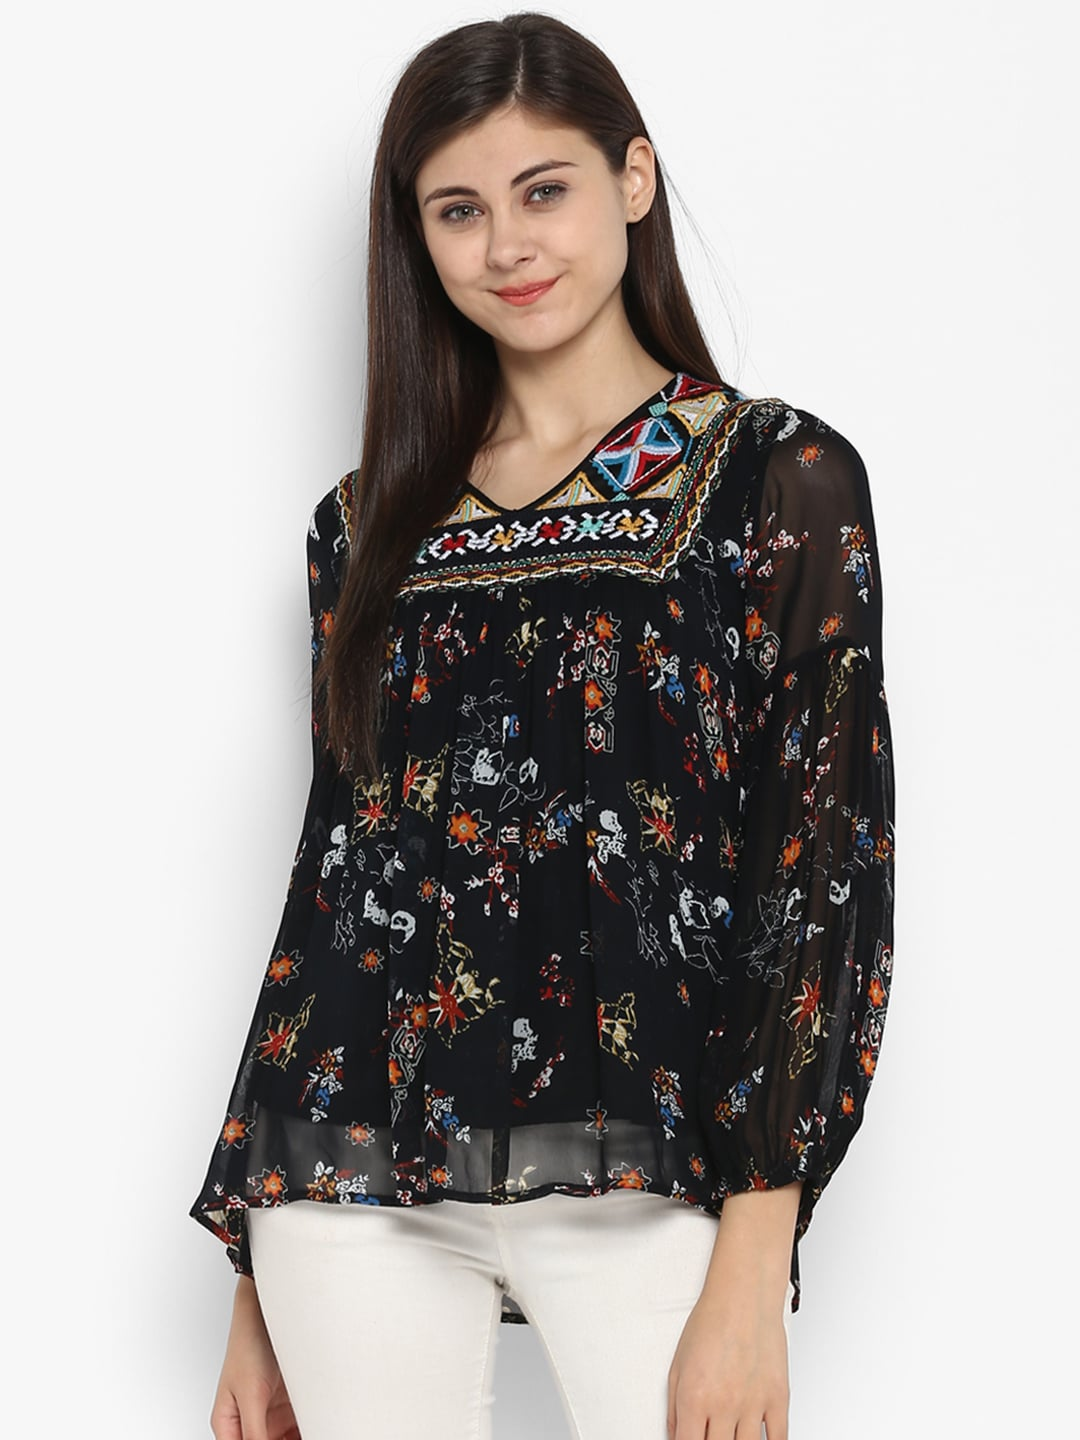 373f1a79a4e Sequin Tops - Buy Sequin Tops online in India